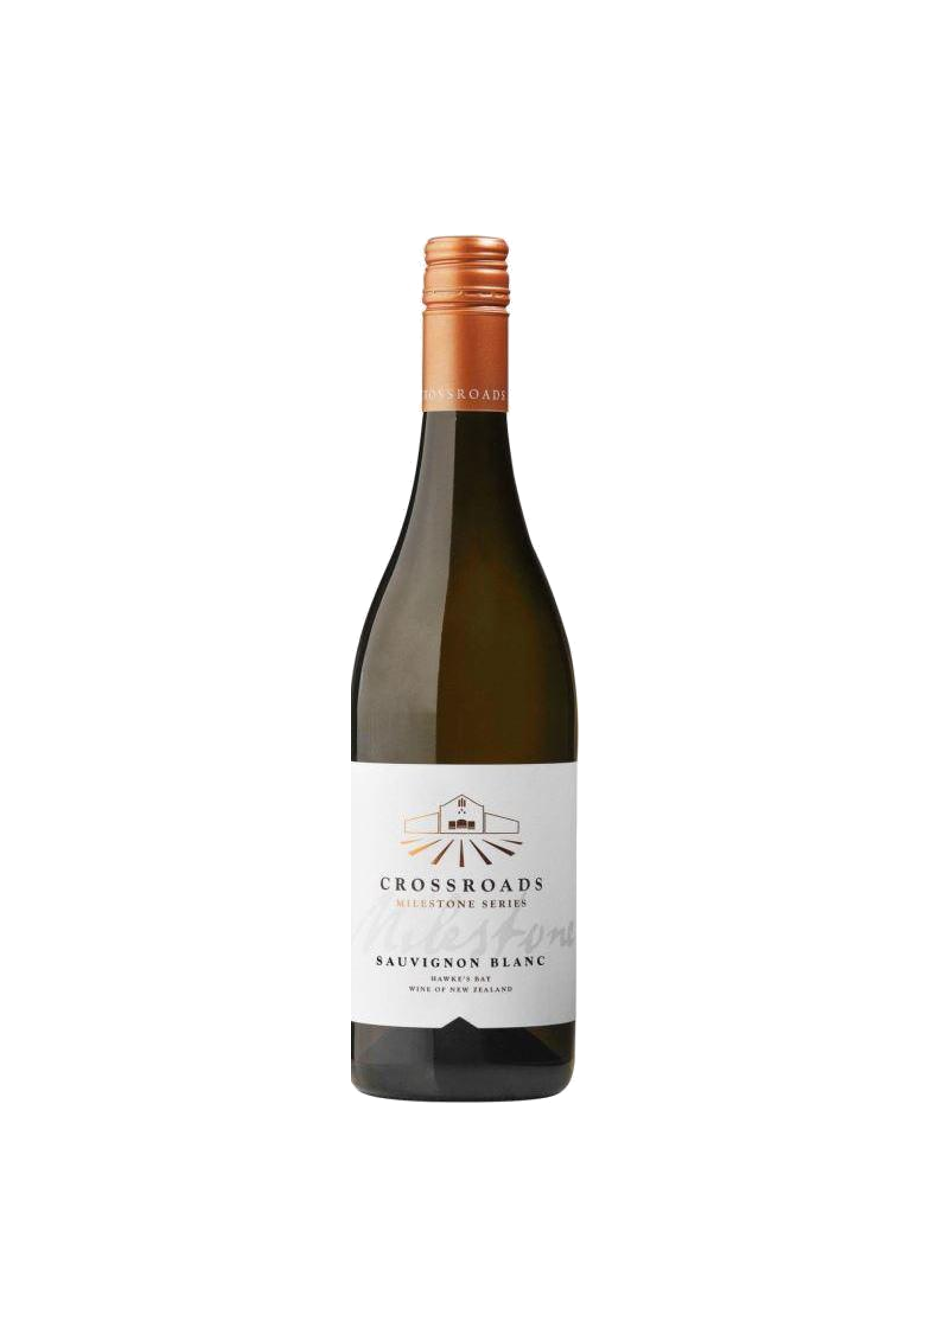 Crossroads 'Milestone Series' Marlborough Sauvignon Blanc 2017